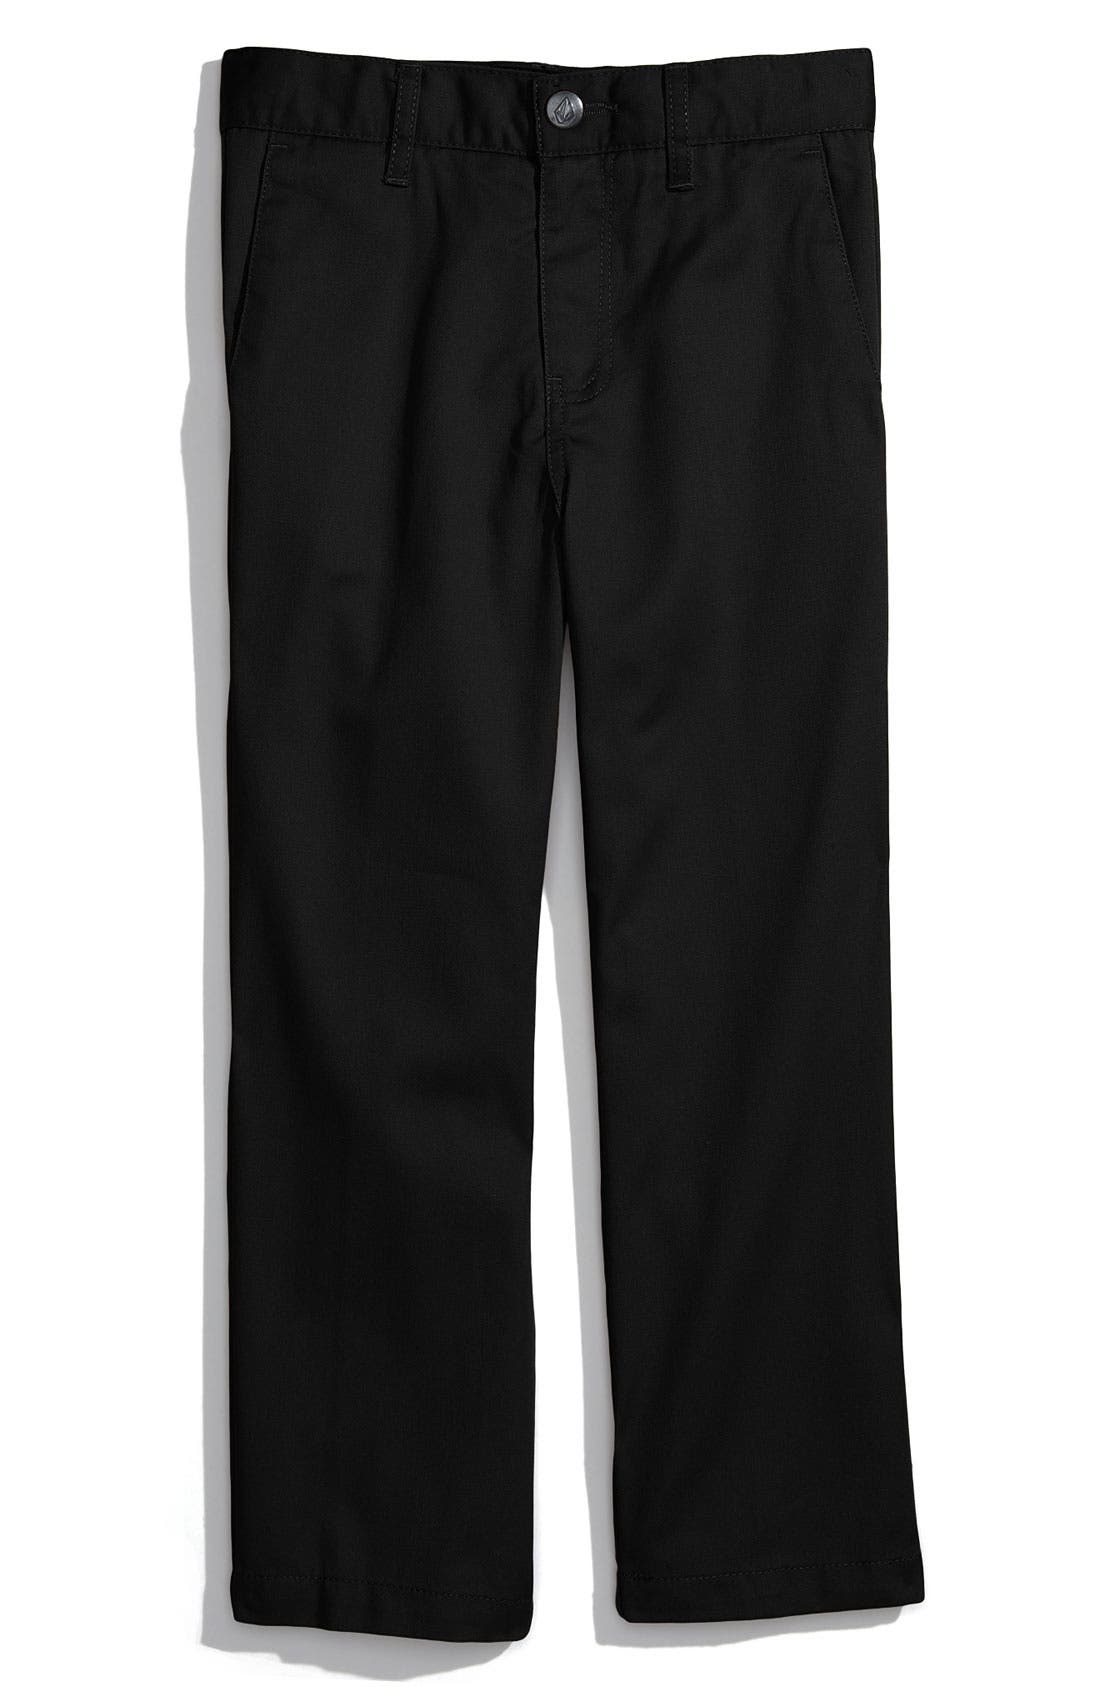 Main Image - Volcom 'Modern' Chinos (Little Boys)